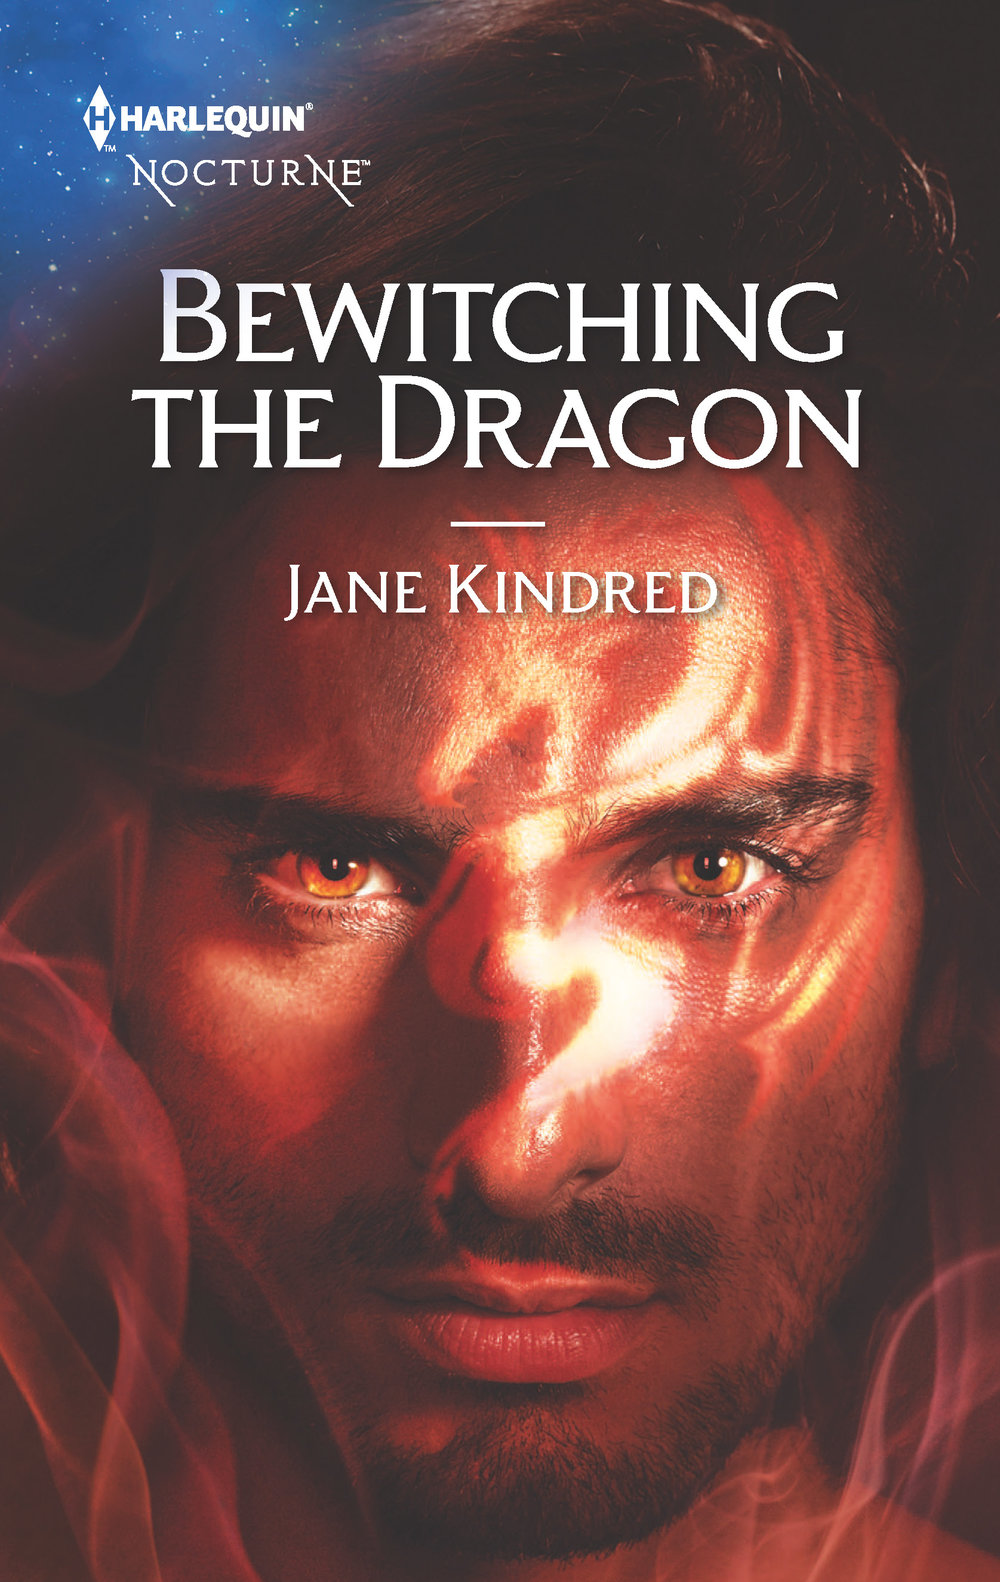 Bewitching the Dragon